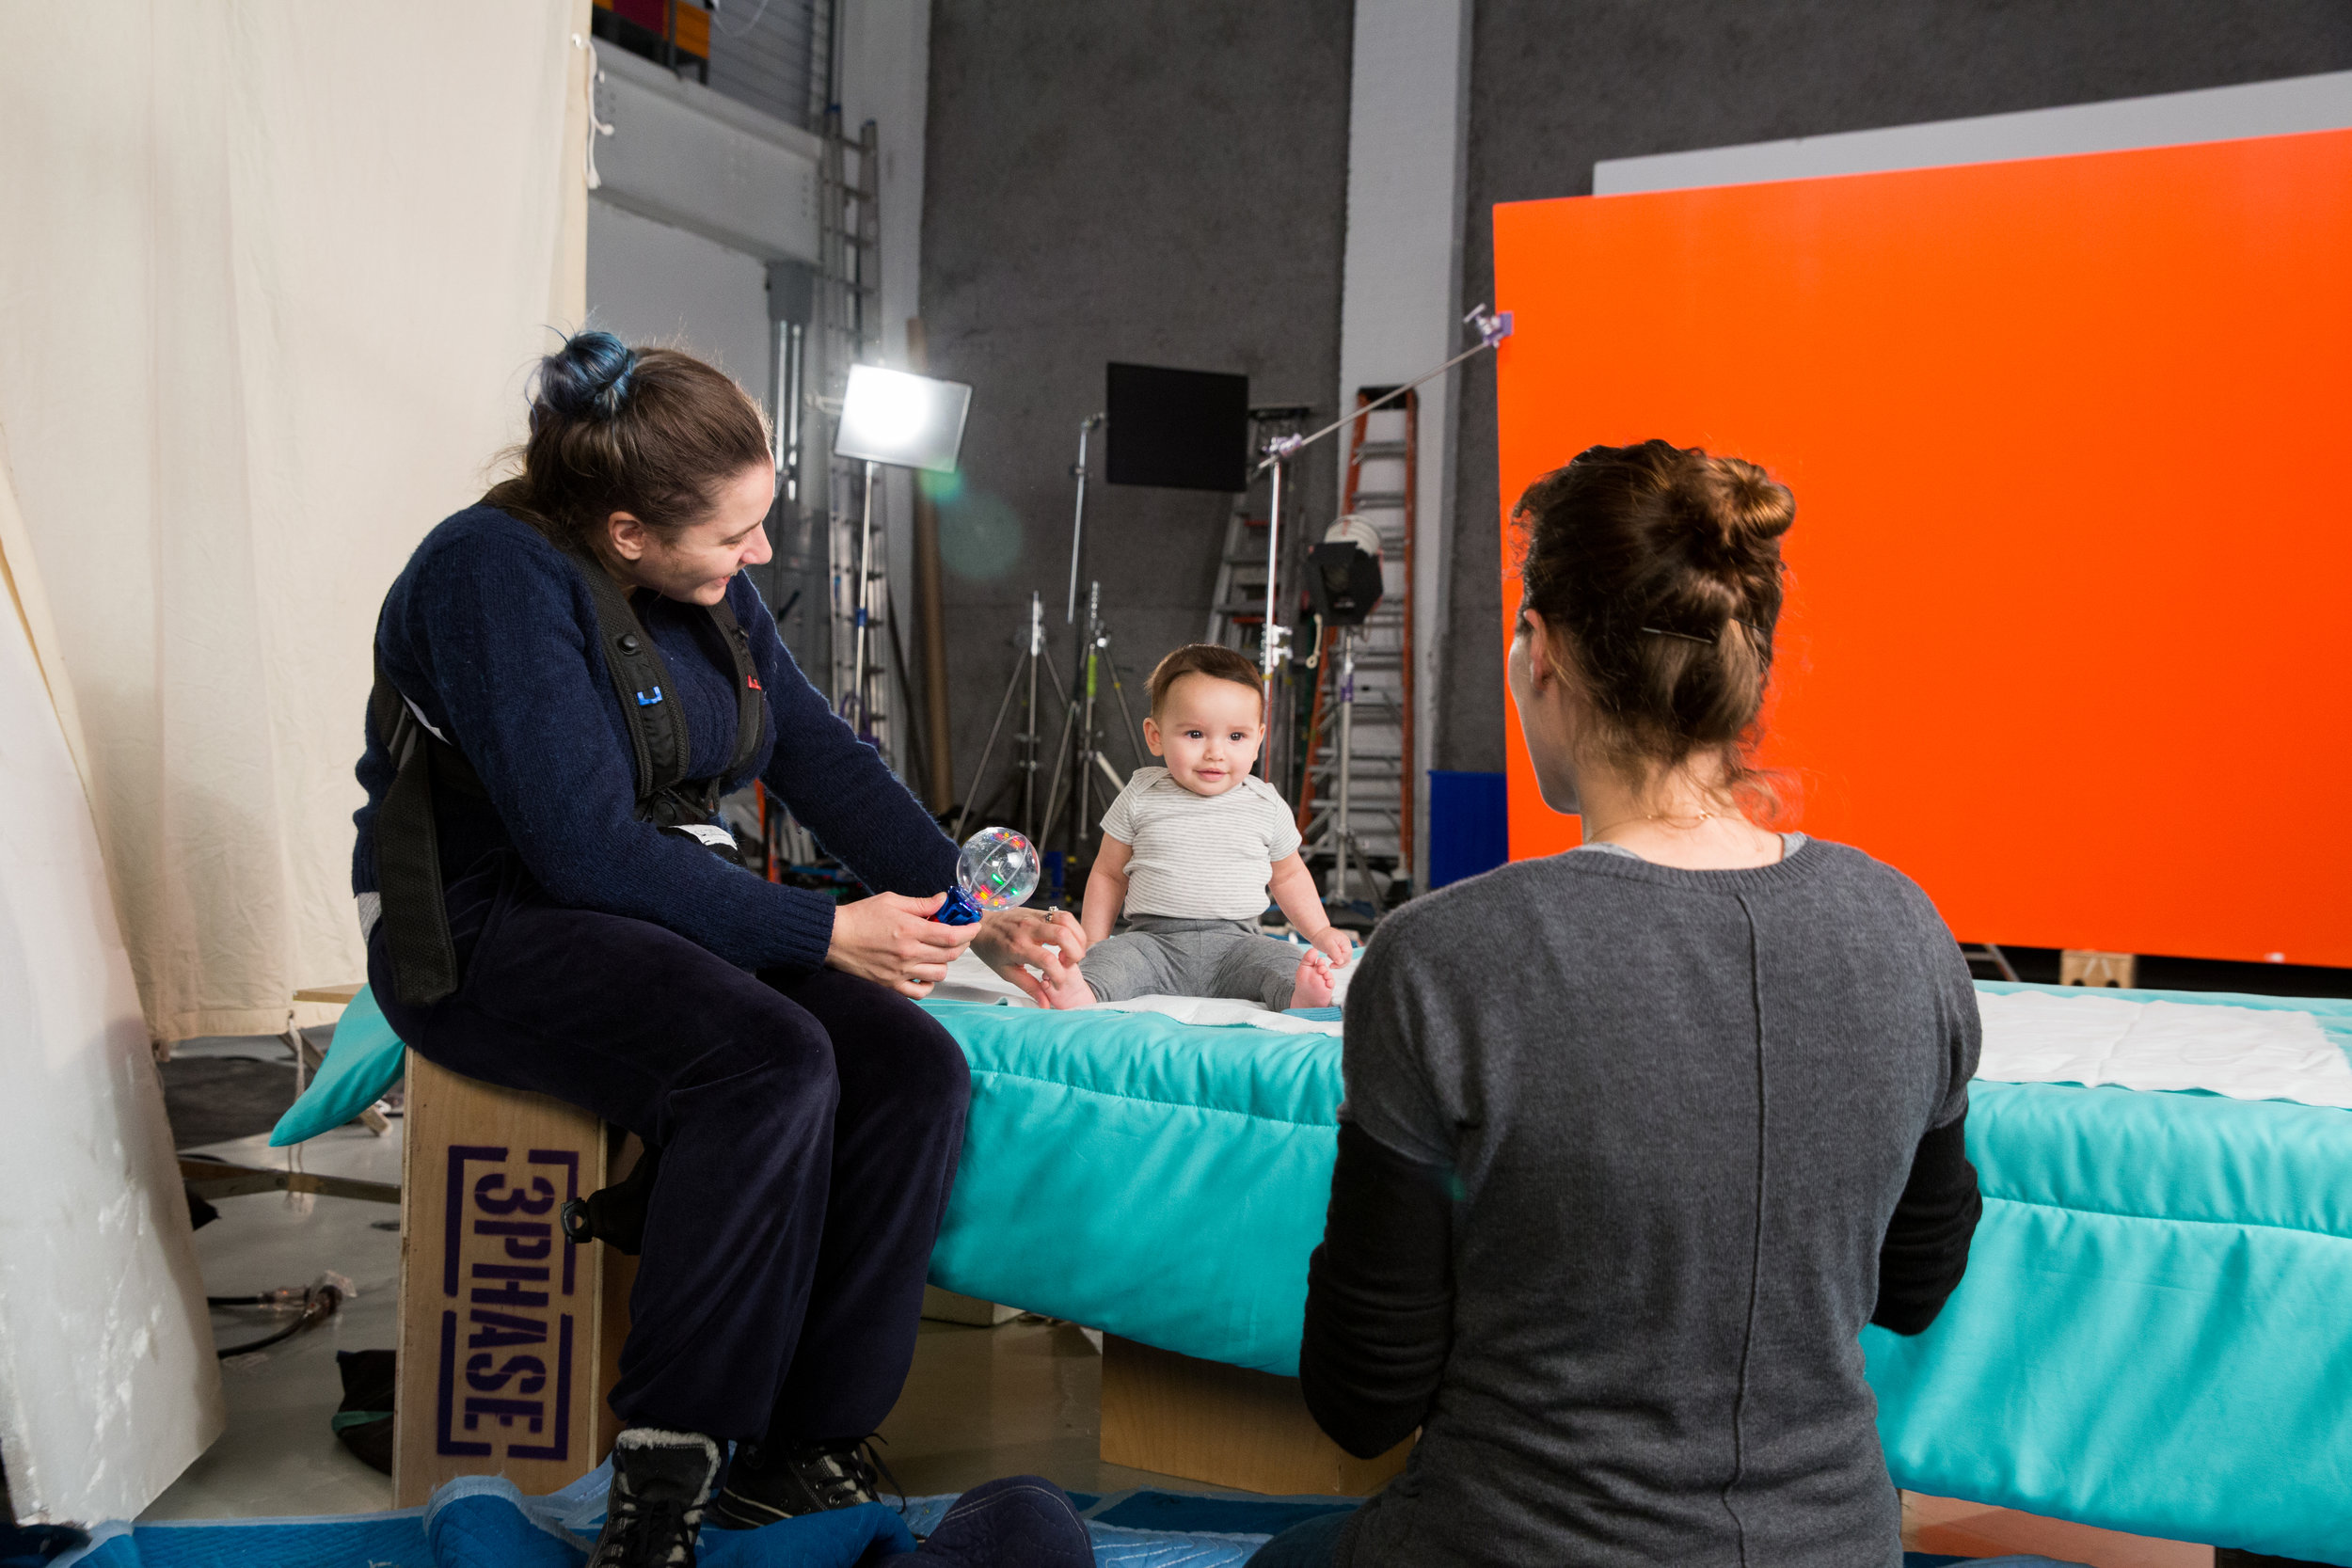 Brooklyn Studios: BOON Inc shoot  Mom and baby wrangler making sure talent is comfortable, happy, and taken care of.